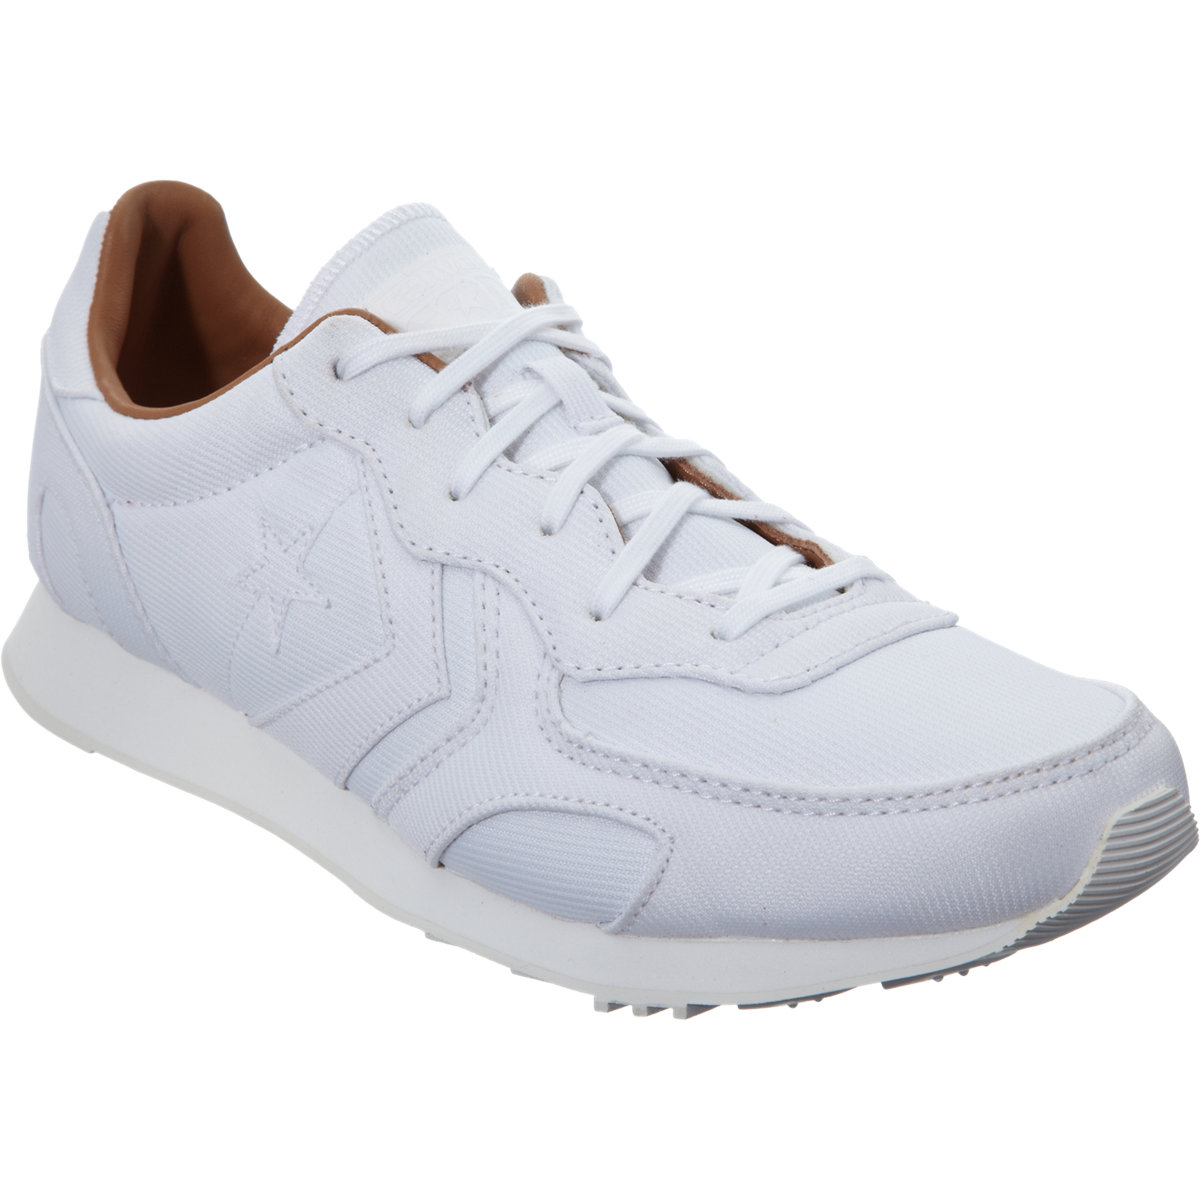 Lyst - Converse Auckland Racer Ox C in White for Men 3ff9b21af